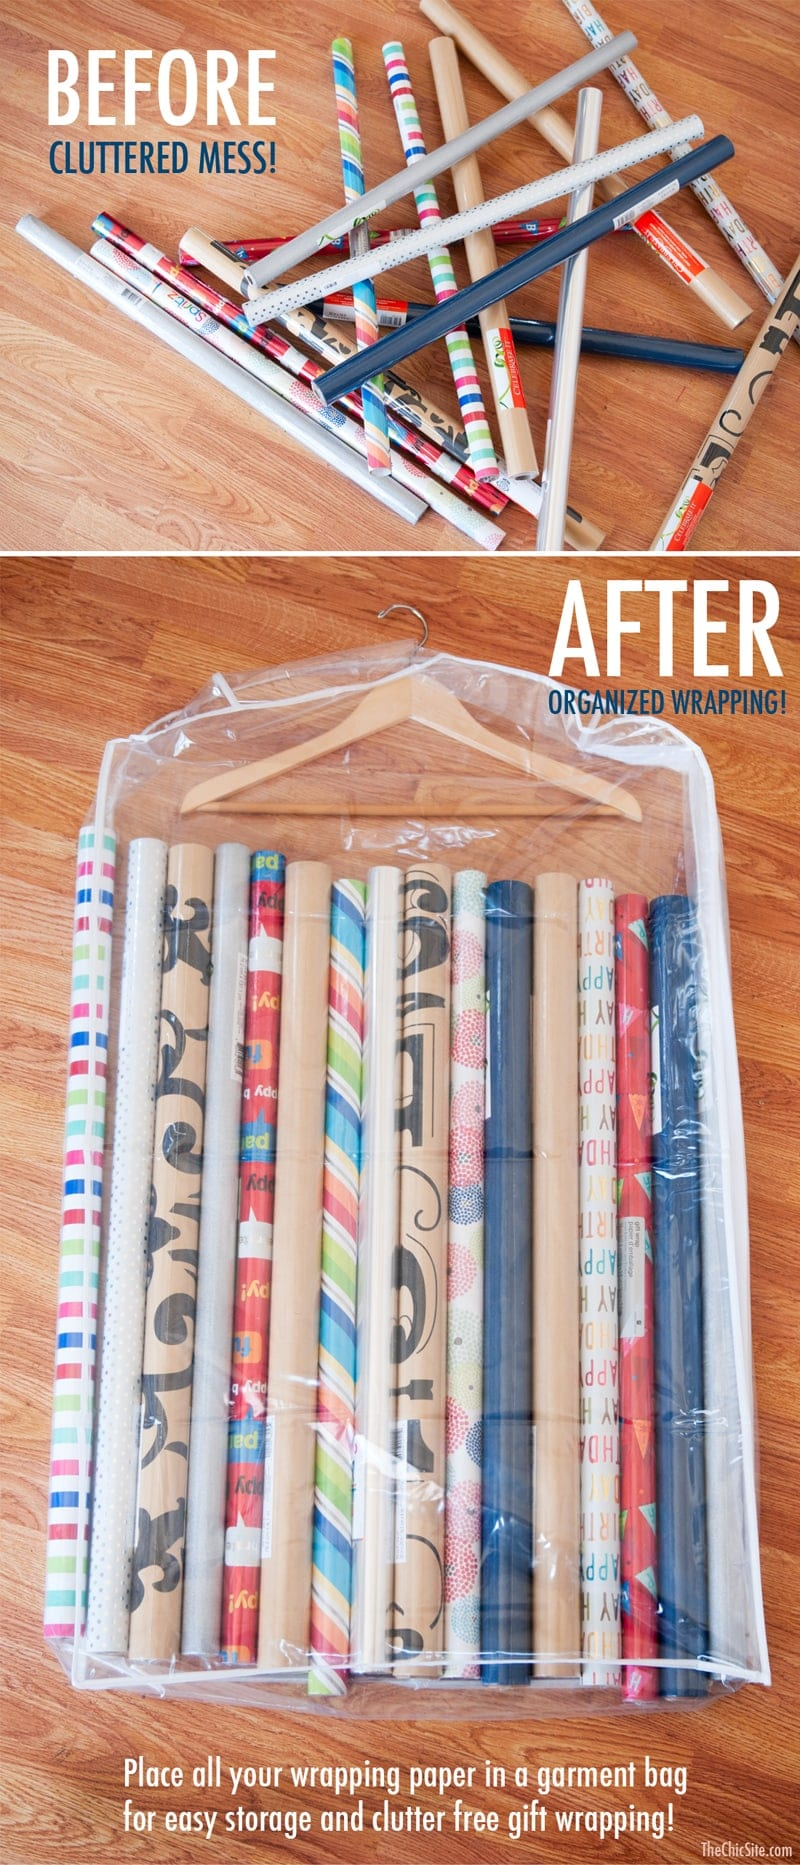 A before and after image showing a pile of wrapping paper rolls scattered on floor, and then neatly stored inside of a garment bag